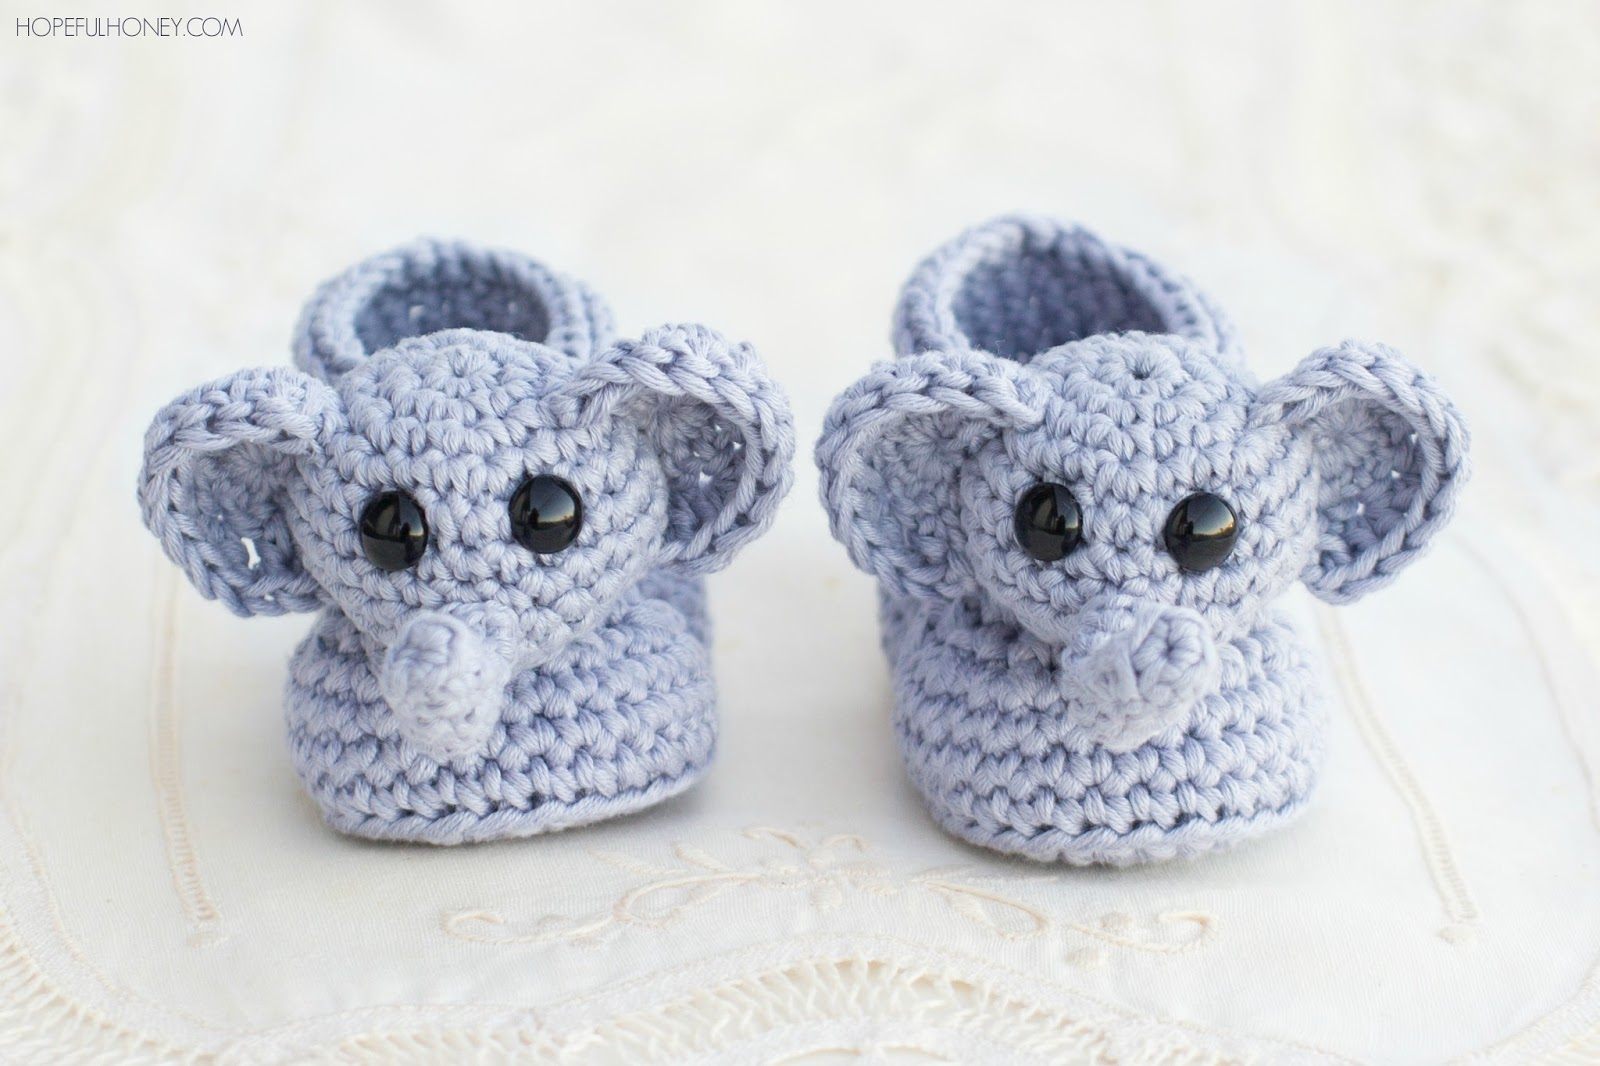 Hopeful Honey Craft, Crochet, Create: Ellie The Elephant ...